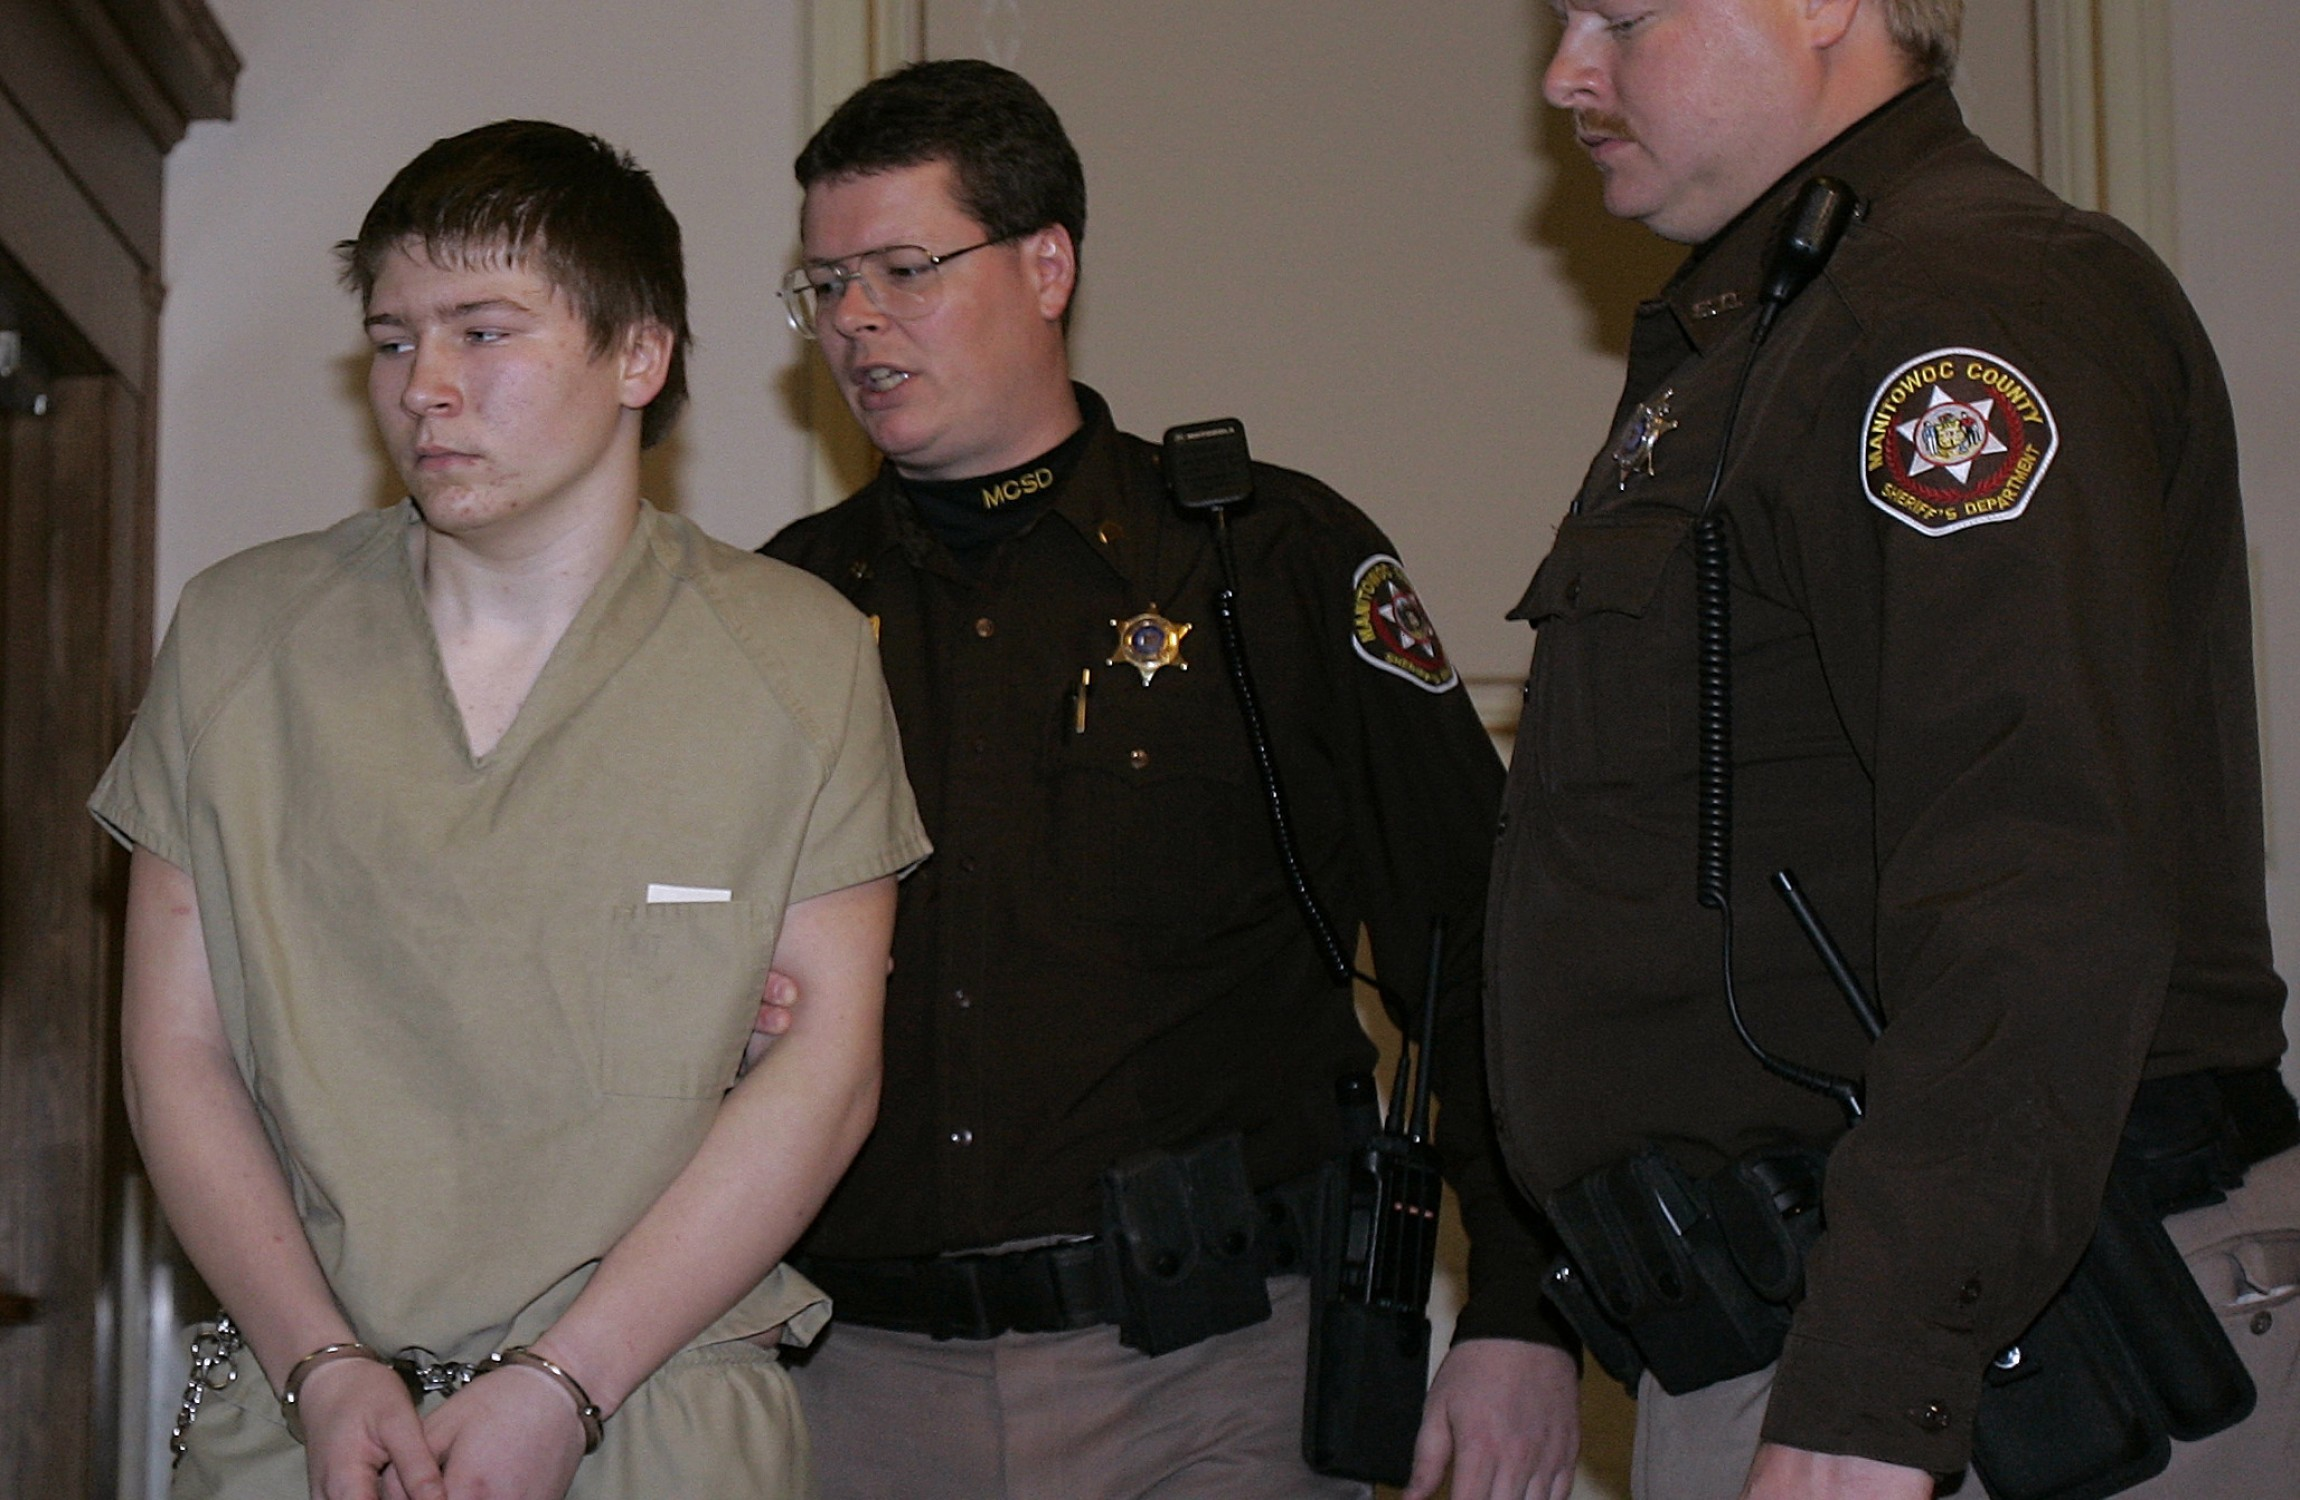 Appeals court overturns conviction of 'Making a Murderer' inmate